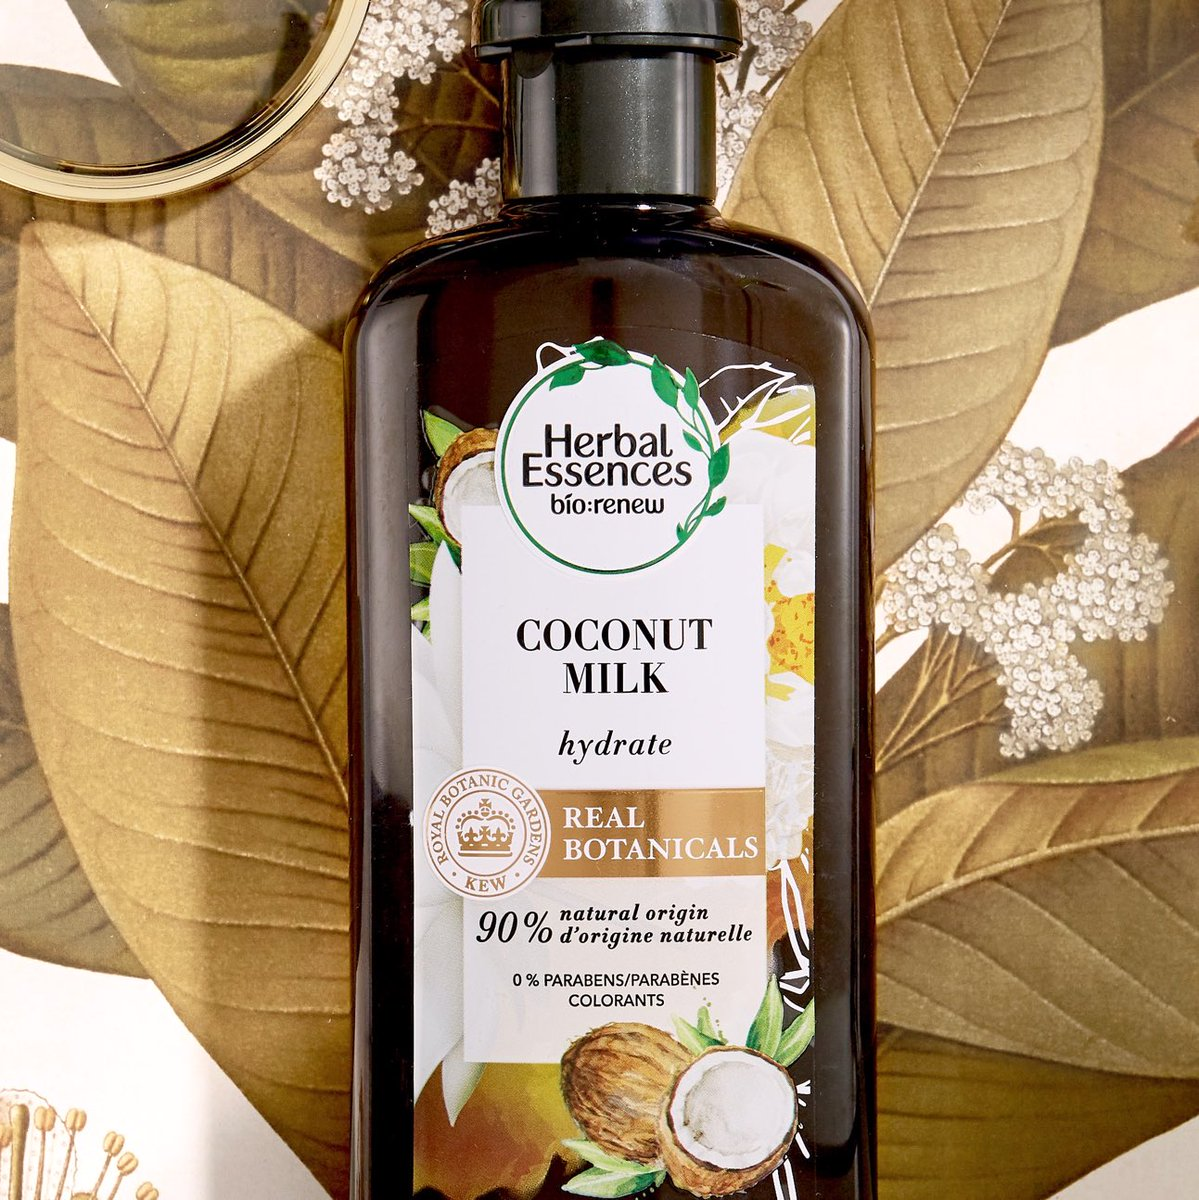 Deep hydration, enchanting fragrance, and real botanicals endorsed by  the Royal Botanic Gardens, Kew @KewGardens, what more could you ask for? 🥥 #HerbalEssences #PlantPowerInEveryShower https://t.co/vJP4AjoDG8